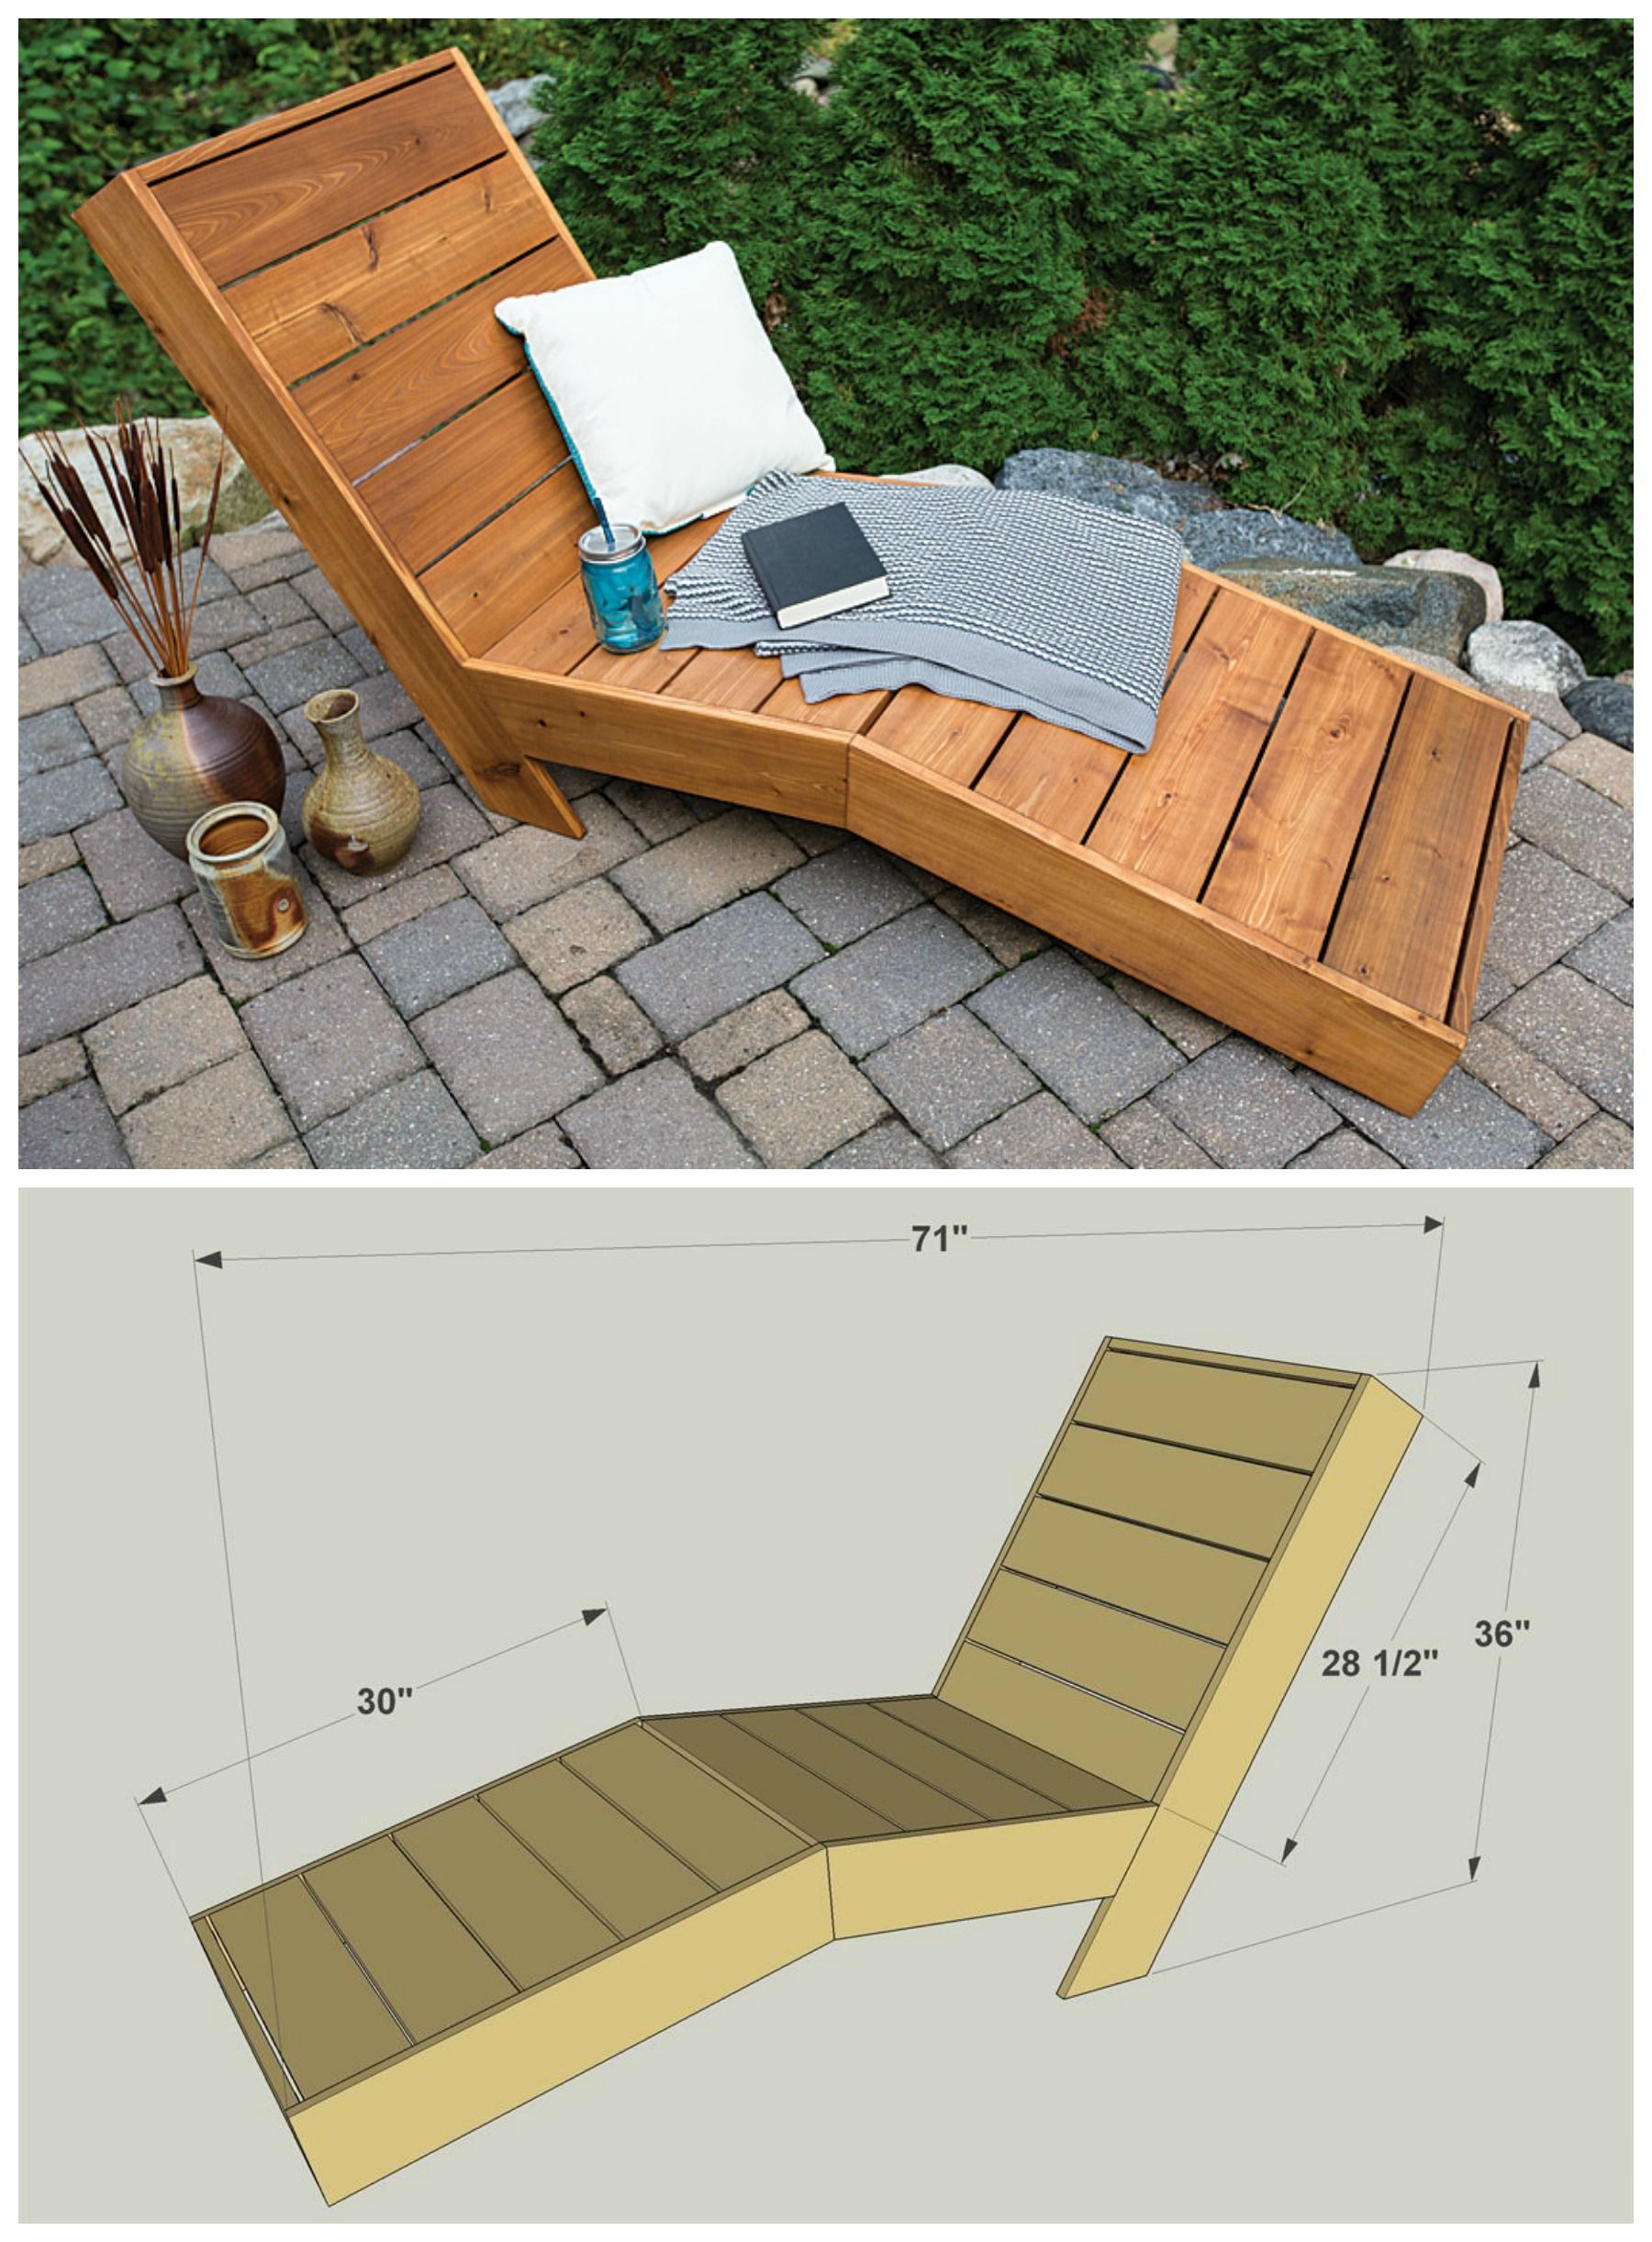 Diy Patio Sofa Plans Wicker Cushions Replacement Outdoor Chaise Lounge Free At Buildsomething